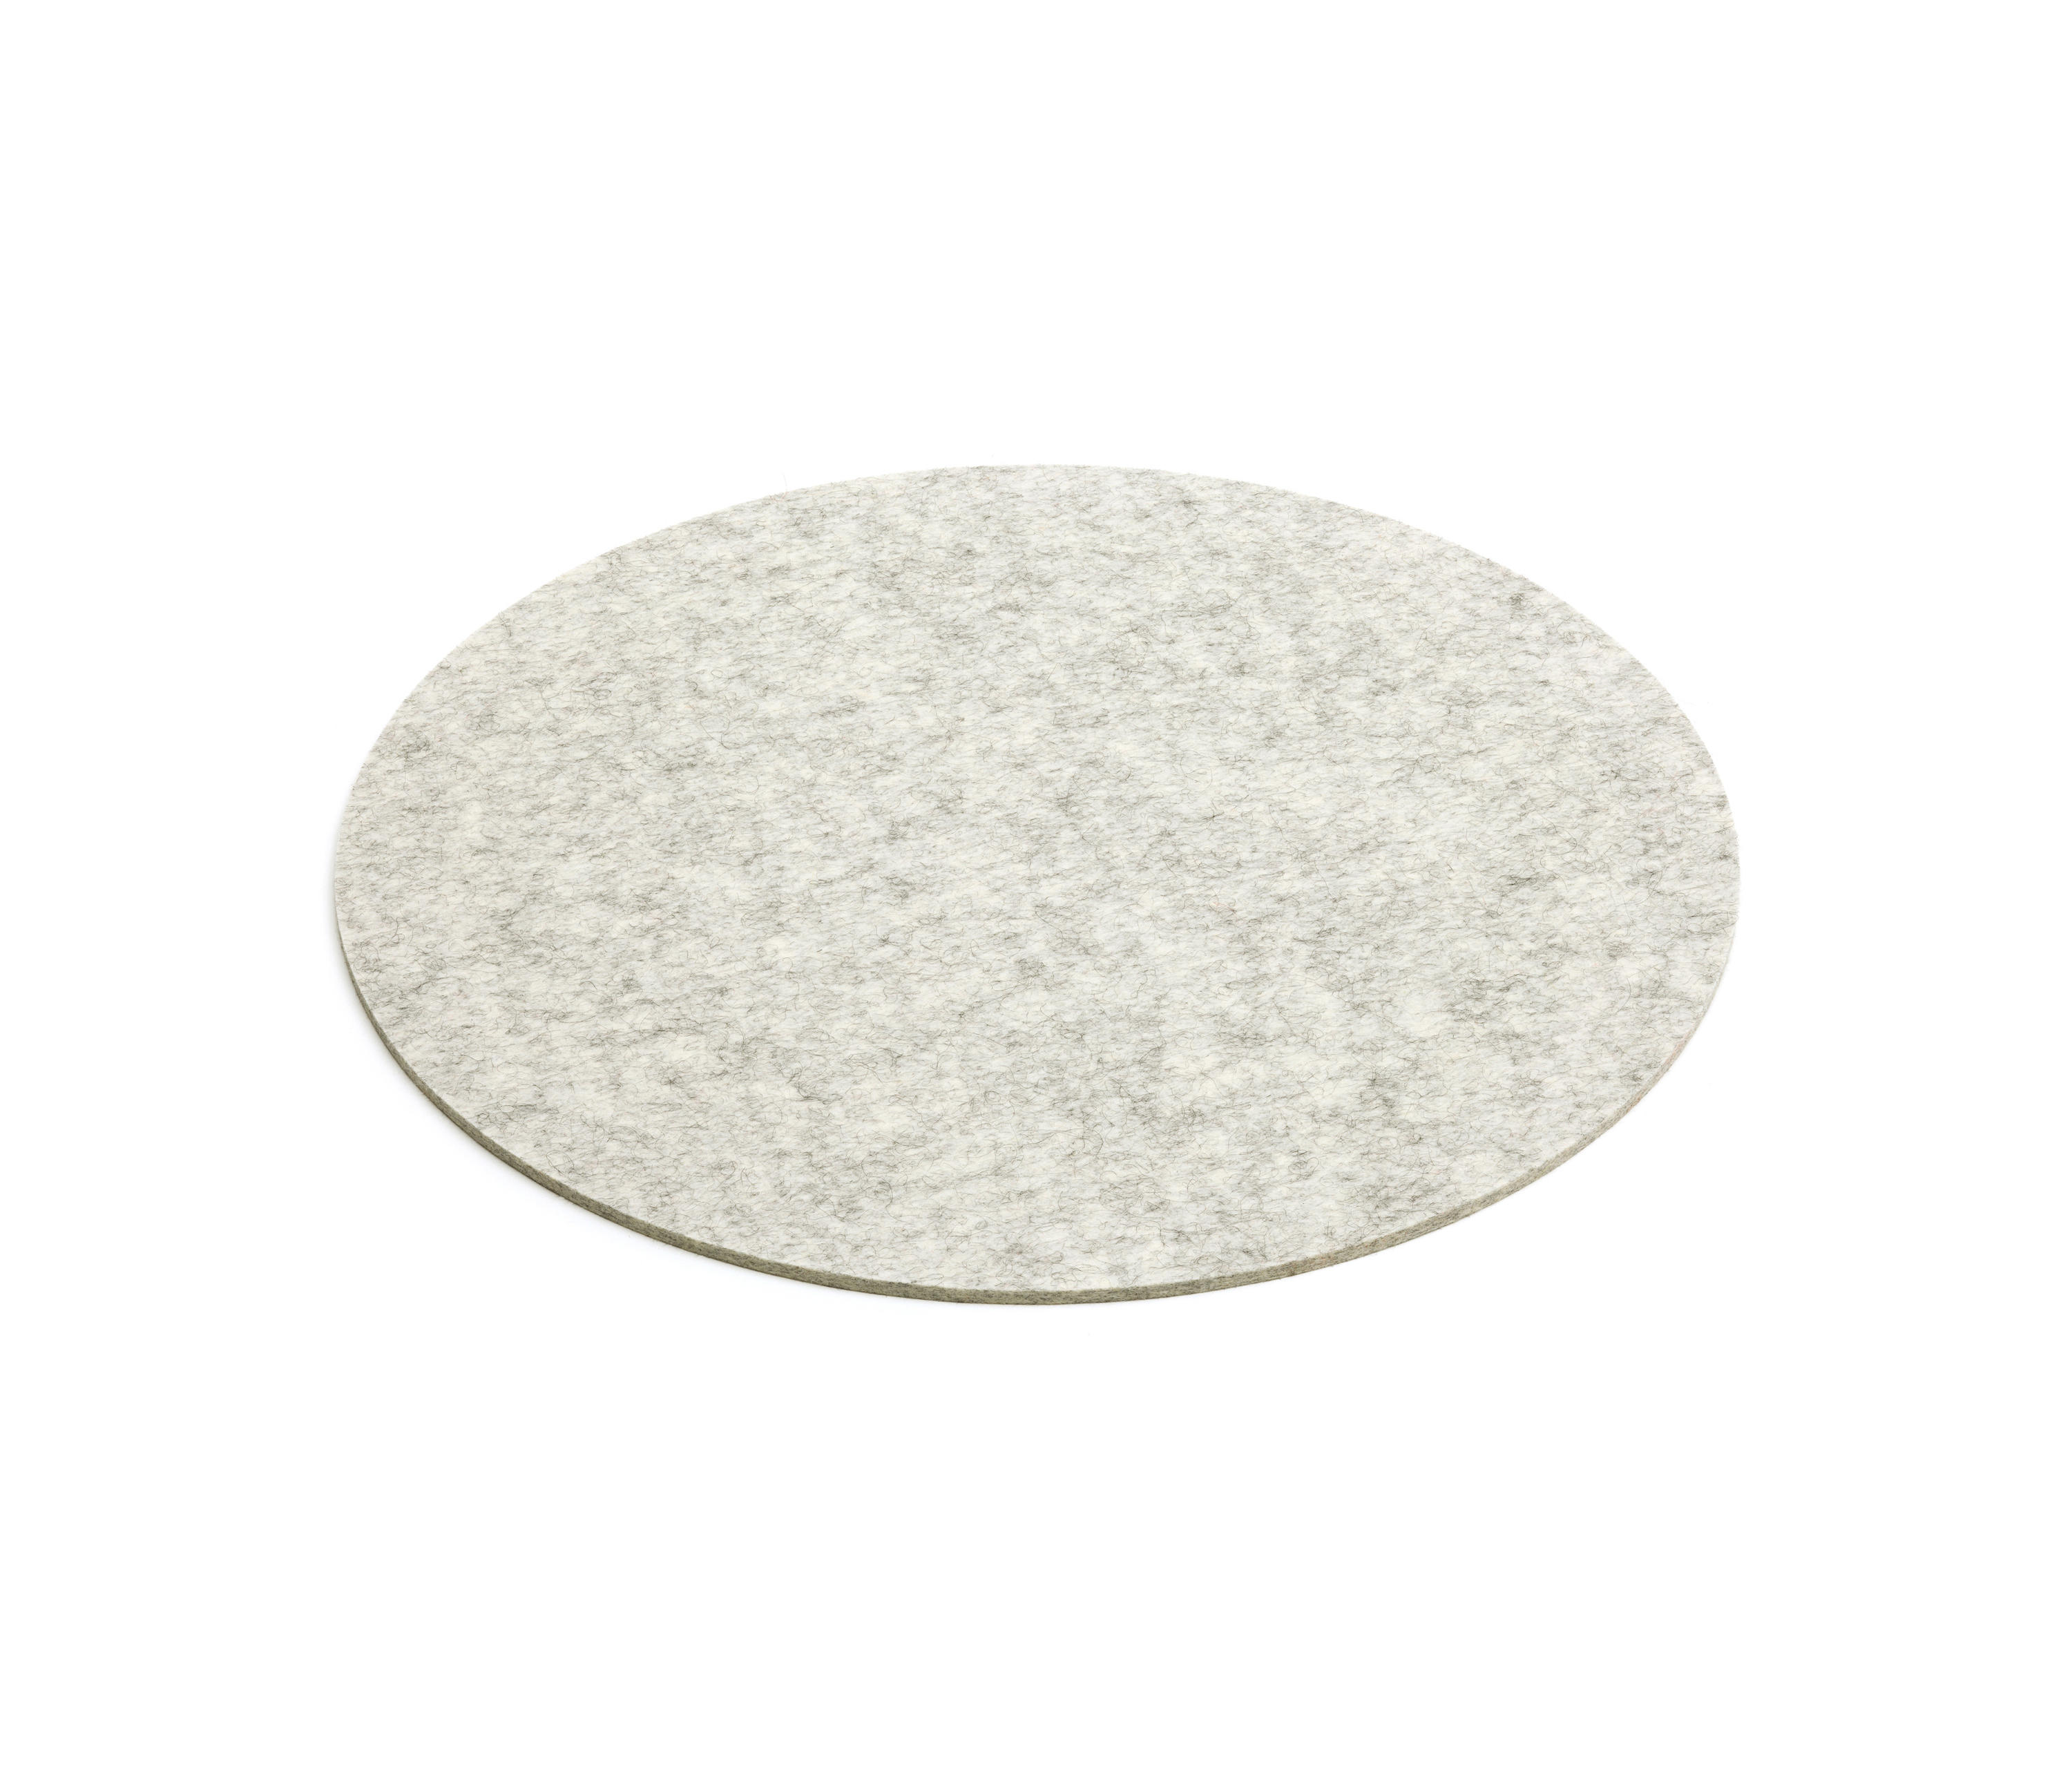 Seat Cushion Round By Hey Sign Cushions